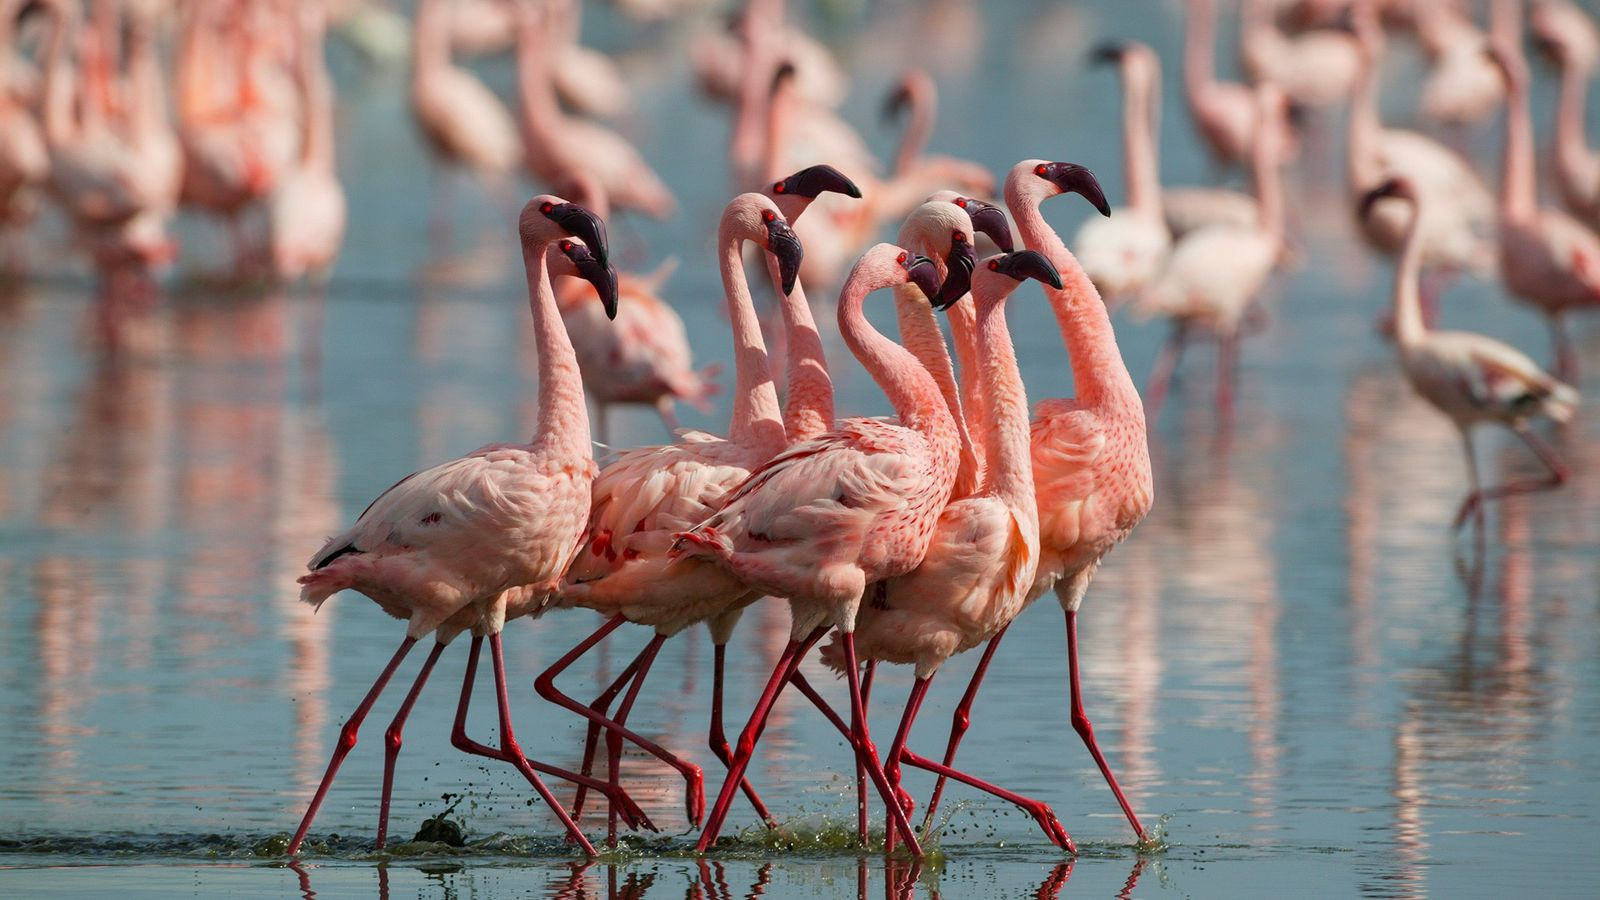 Lesser flamingo (Phoeniconaias minor) males display at Lake Nakuru, Kenya. These animals sometimes fight over food, ...